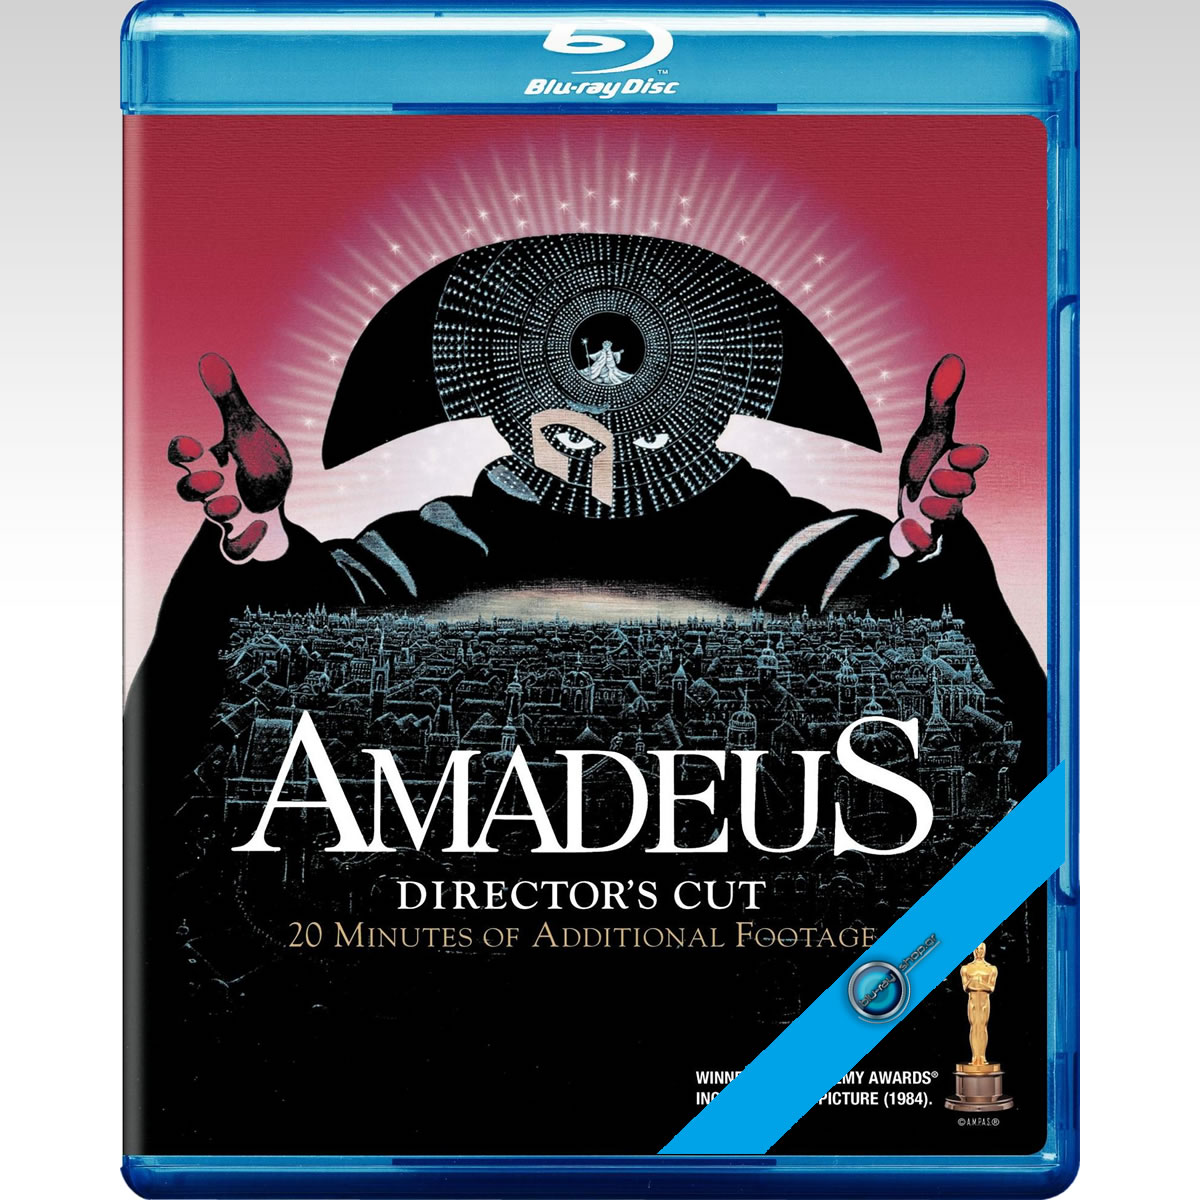 AMADEUS Director's Cut - ΑΜΑΝΤΕΟΥΣ Director's Cut (BLU-RAY)